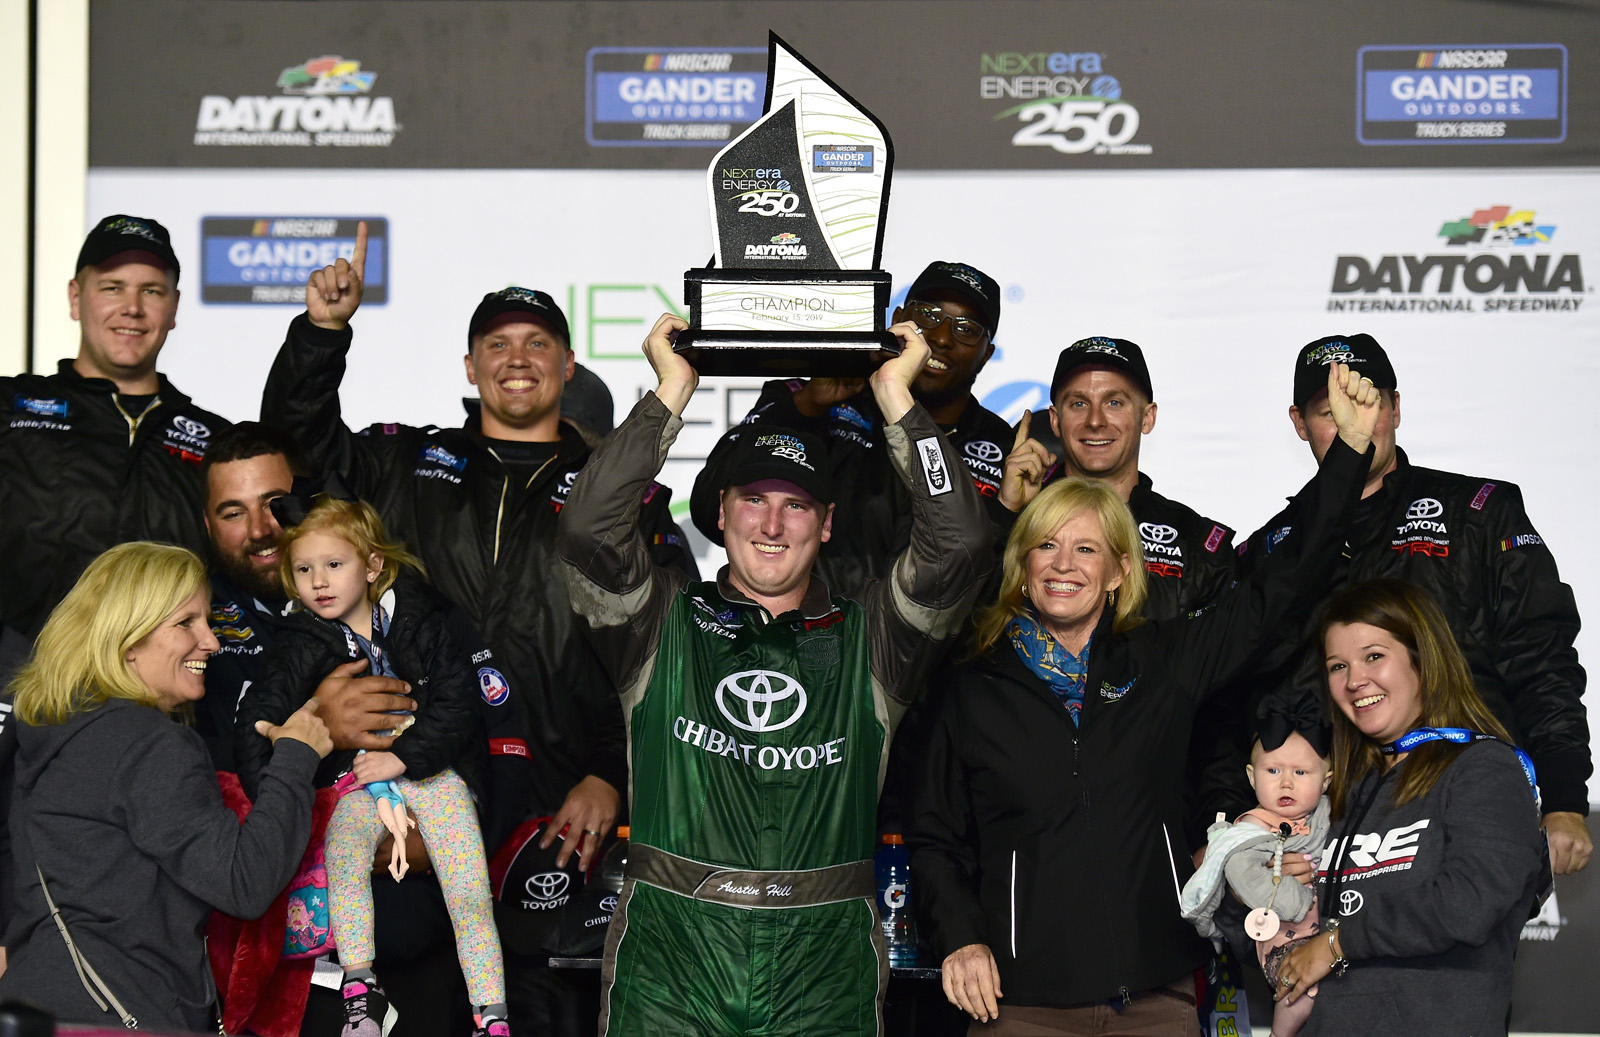 NextEra Energy 250 – NASCAR Gander Outdoors Truck Series at Daytona